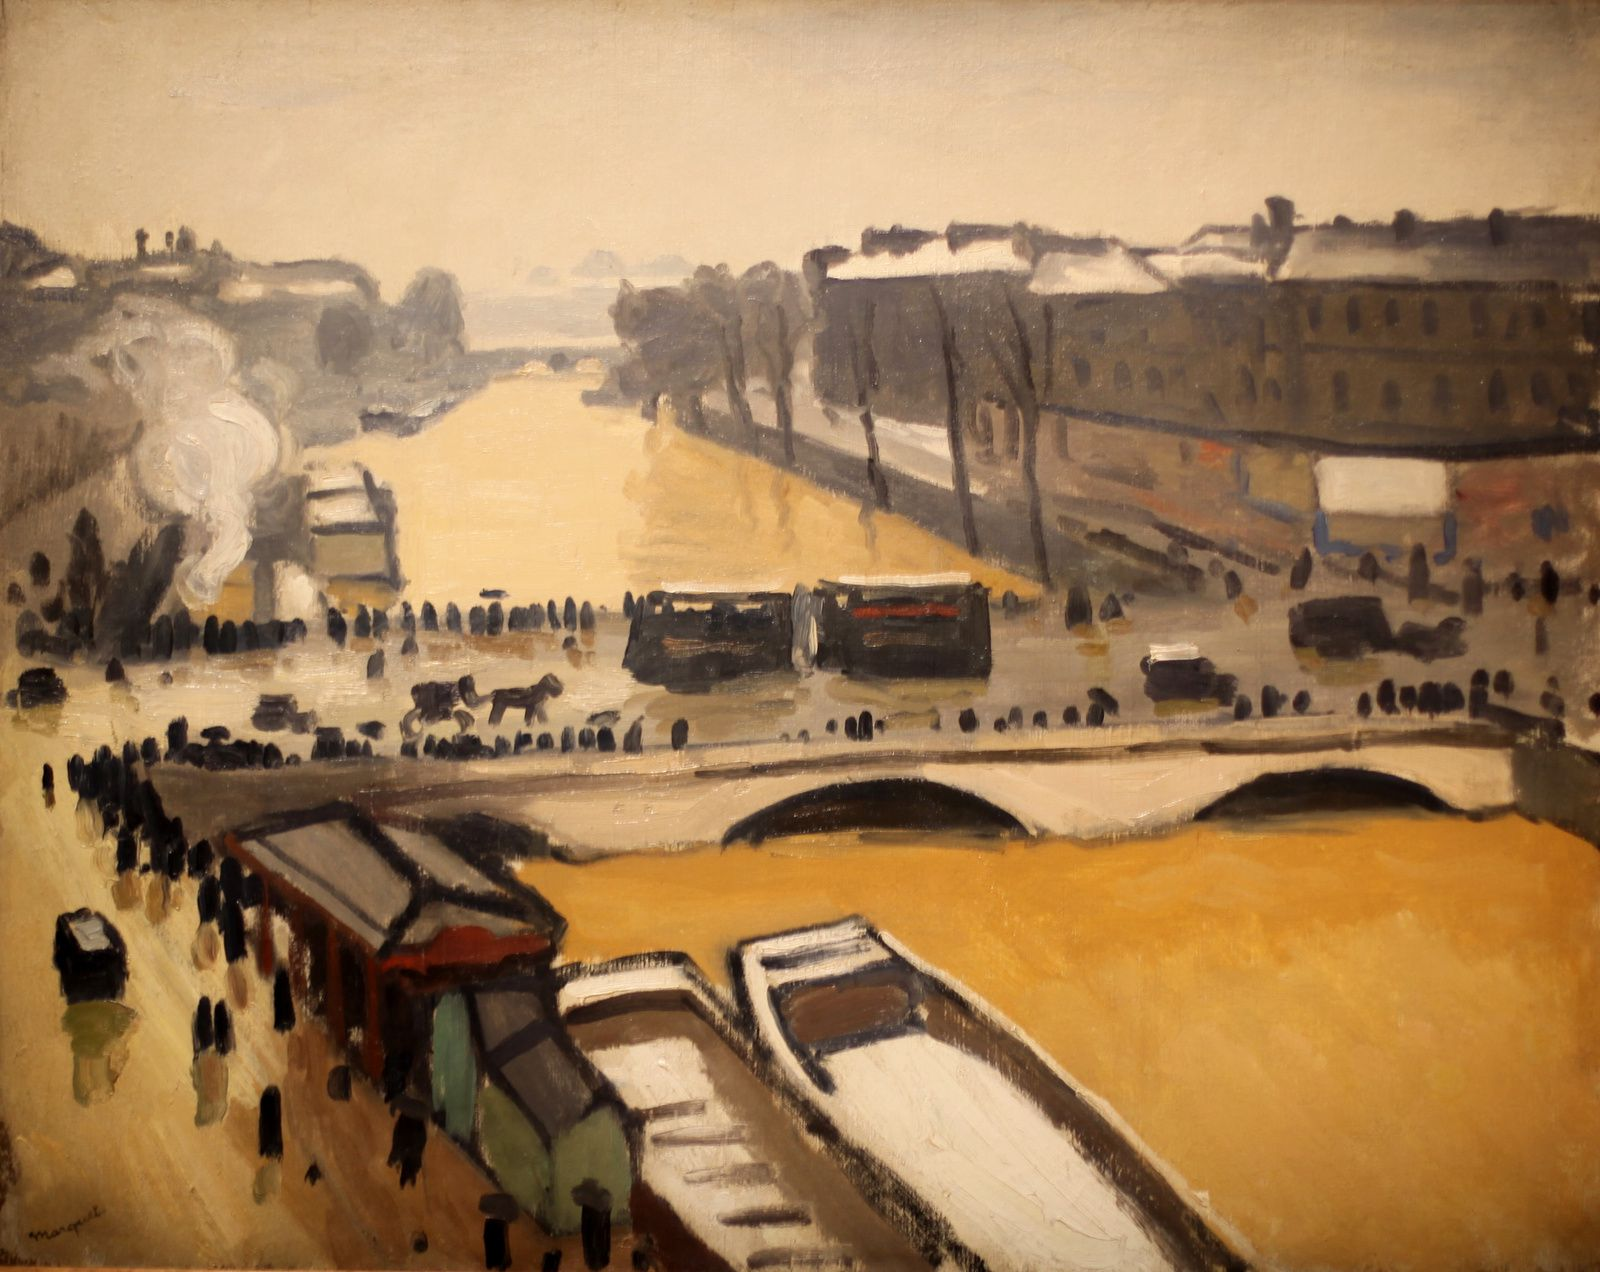 """Le pont Saint Michel inondation à Paris"", 1910 d'Albert Marquet © Photo Éric Simon"